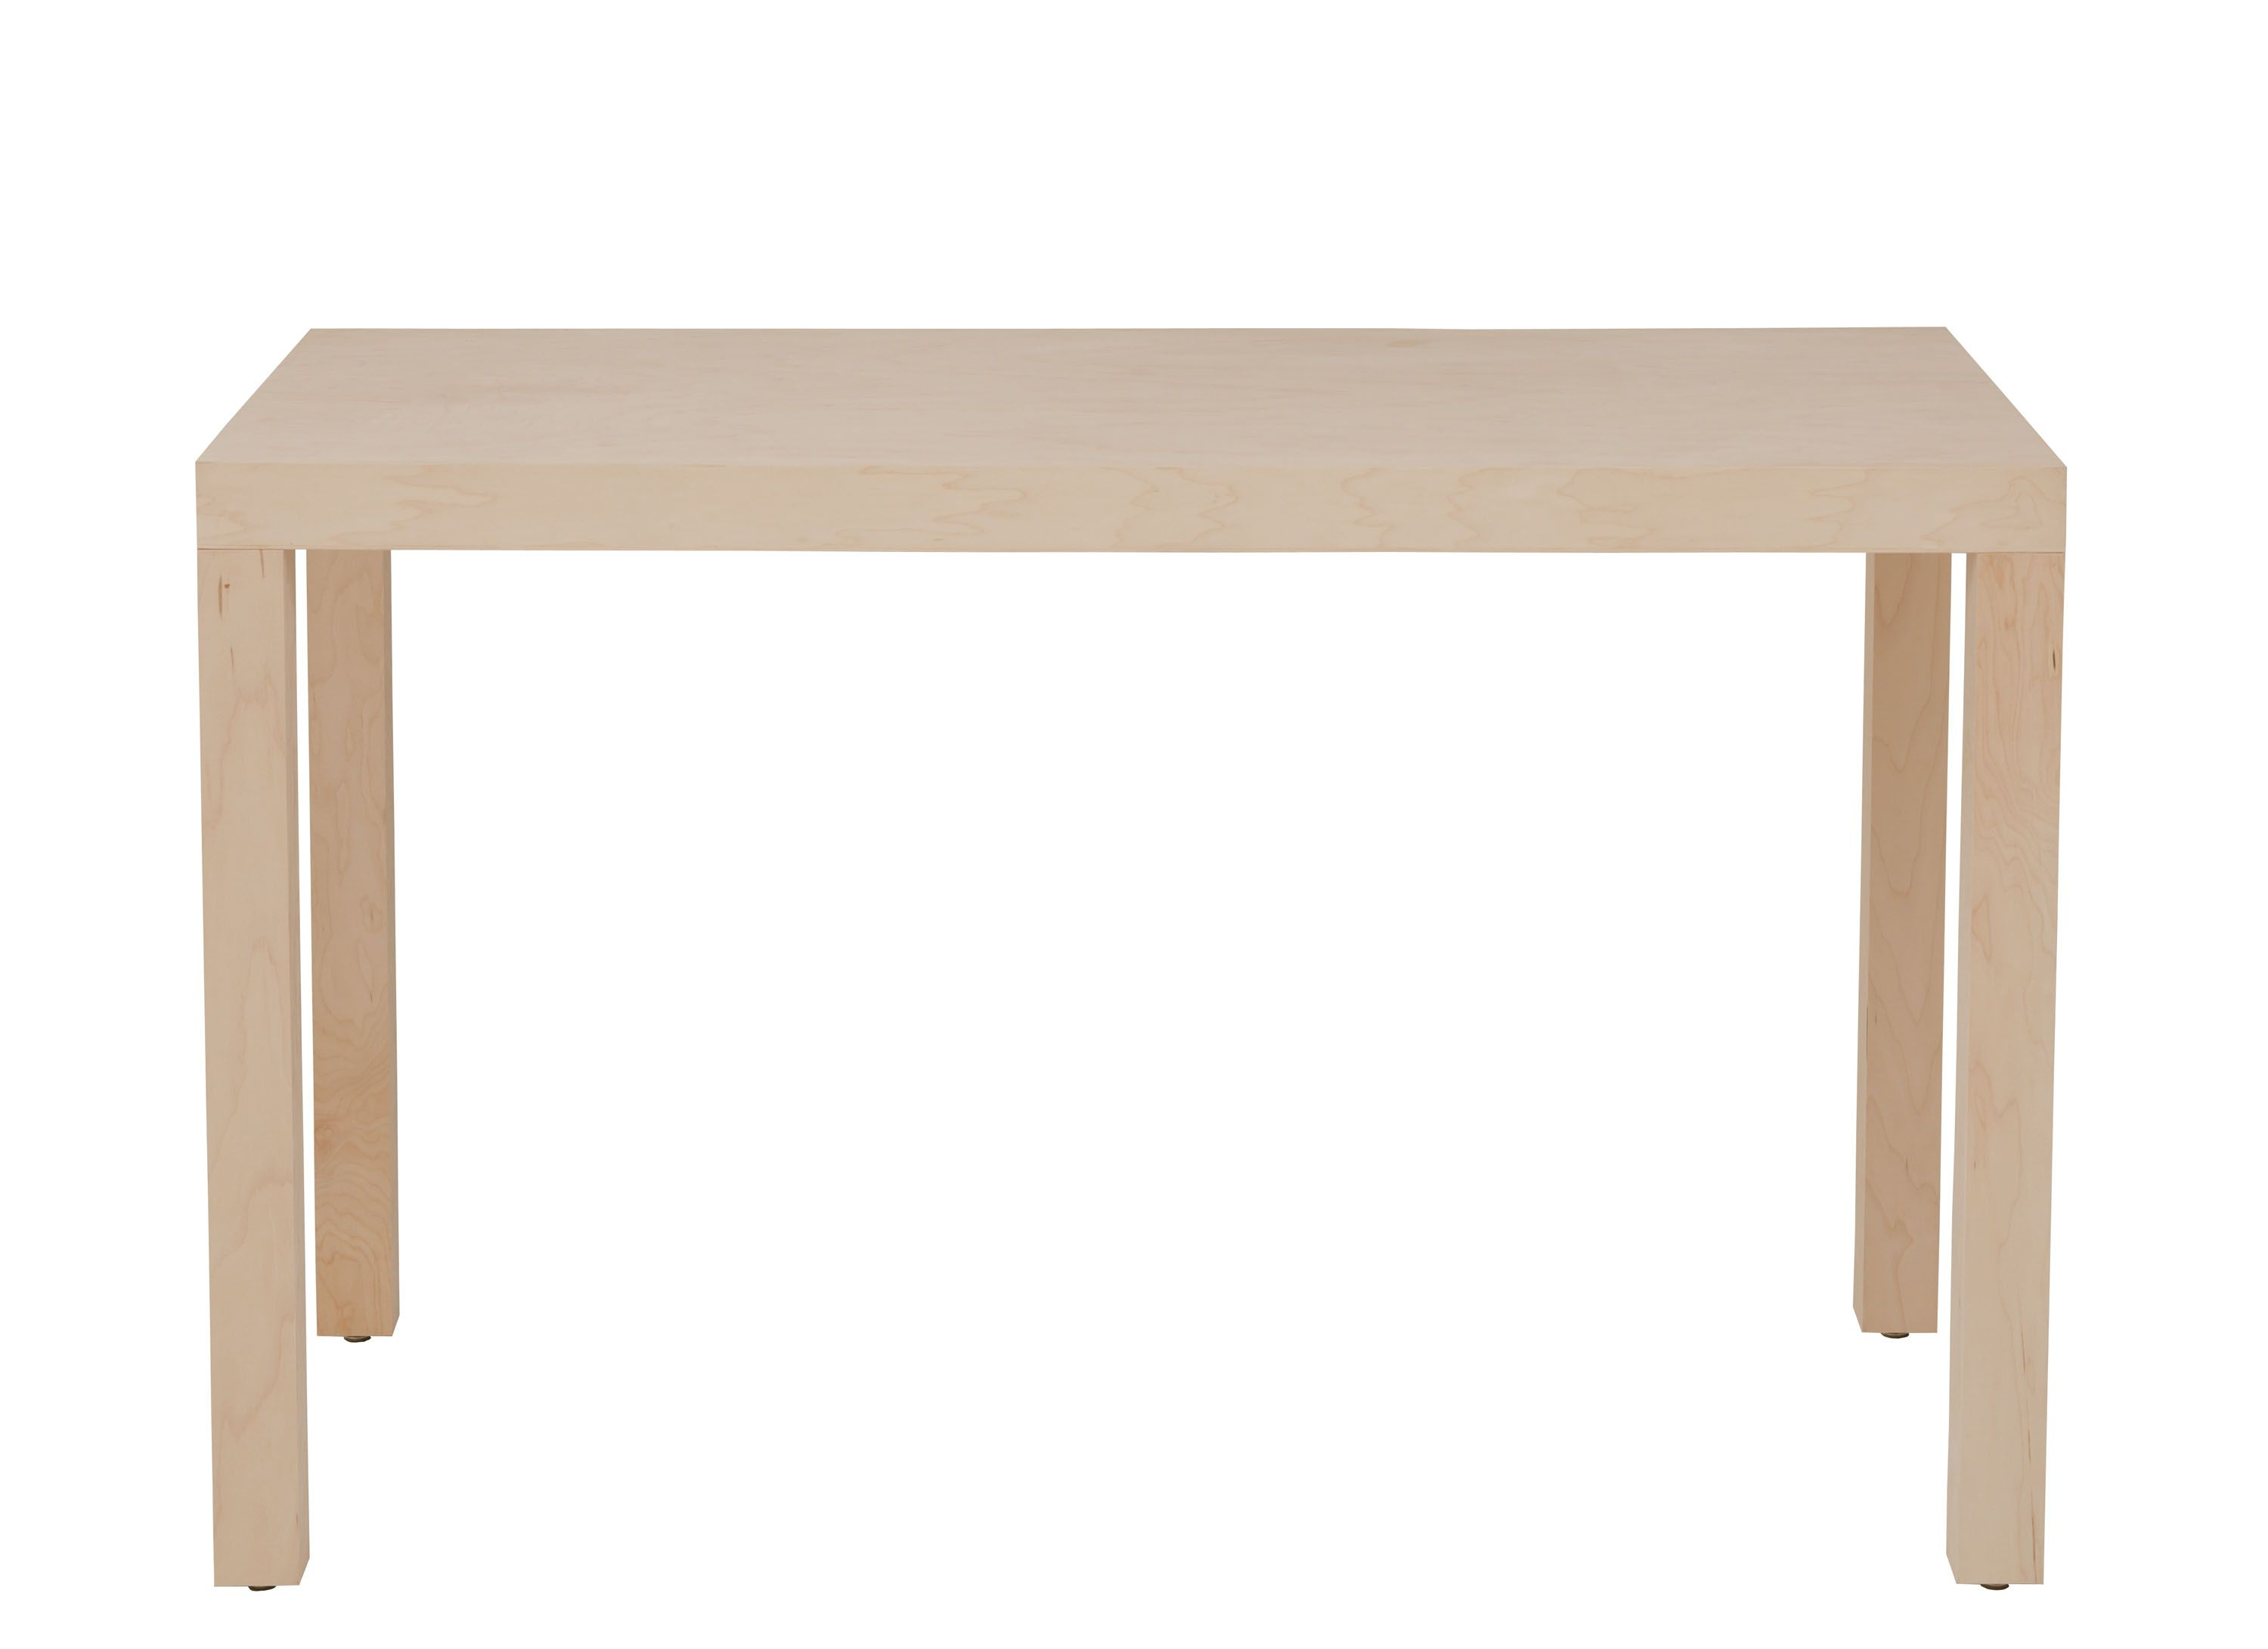 The Parsons Table An Iconic Design From The 1930 S Brings Classic Modernist Design To Your Home Handc Unfinished Wood Furniture Furniture Wood Dining Table